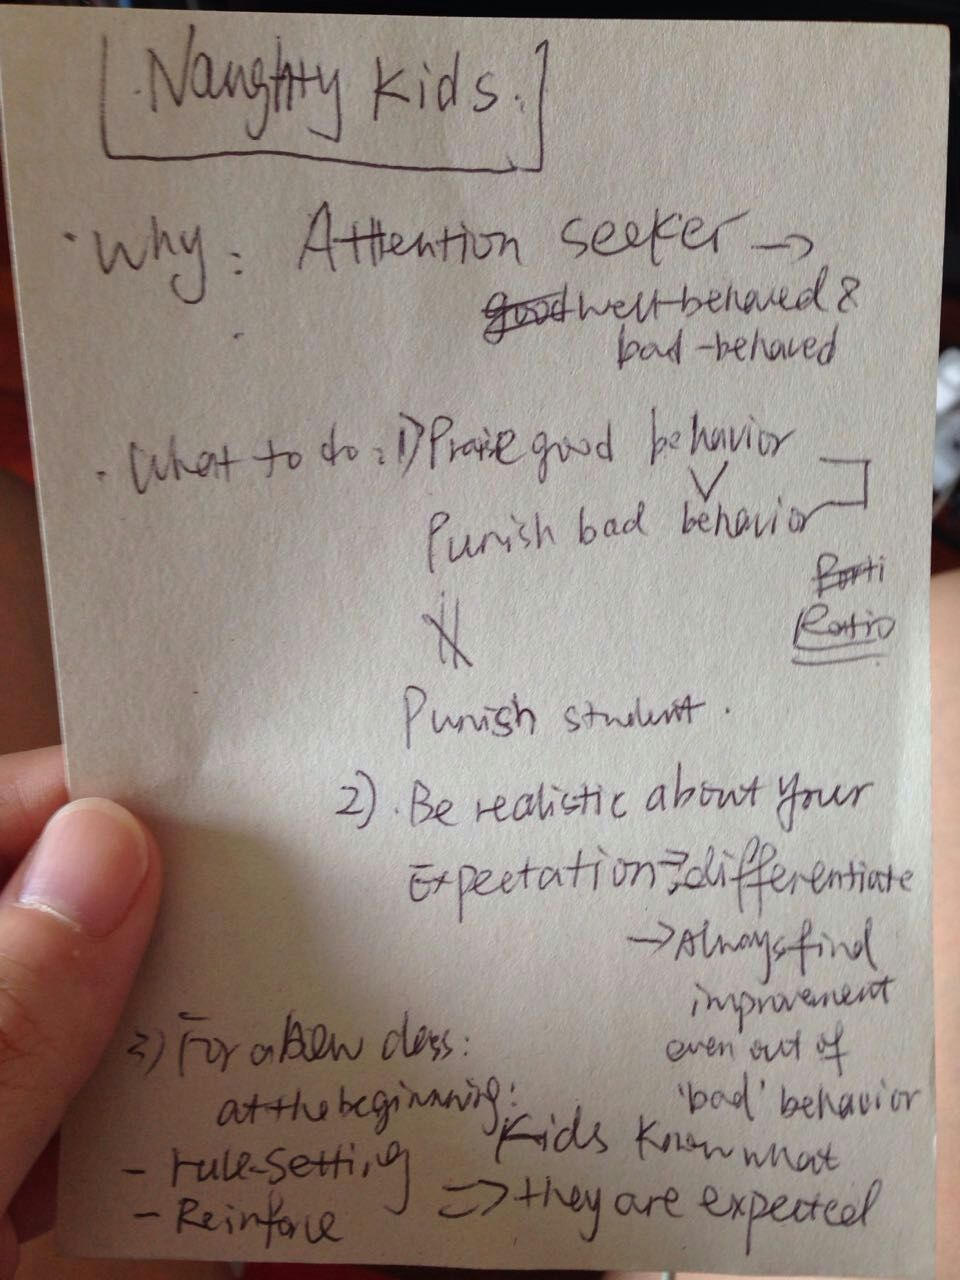 How to get students to behave - podcast notes by Wendy Hu